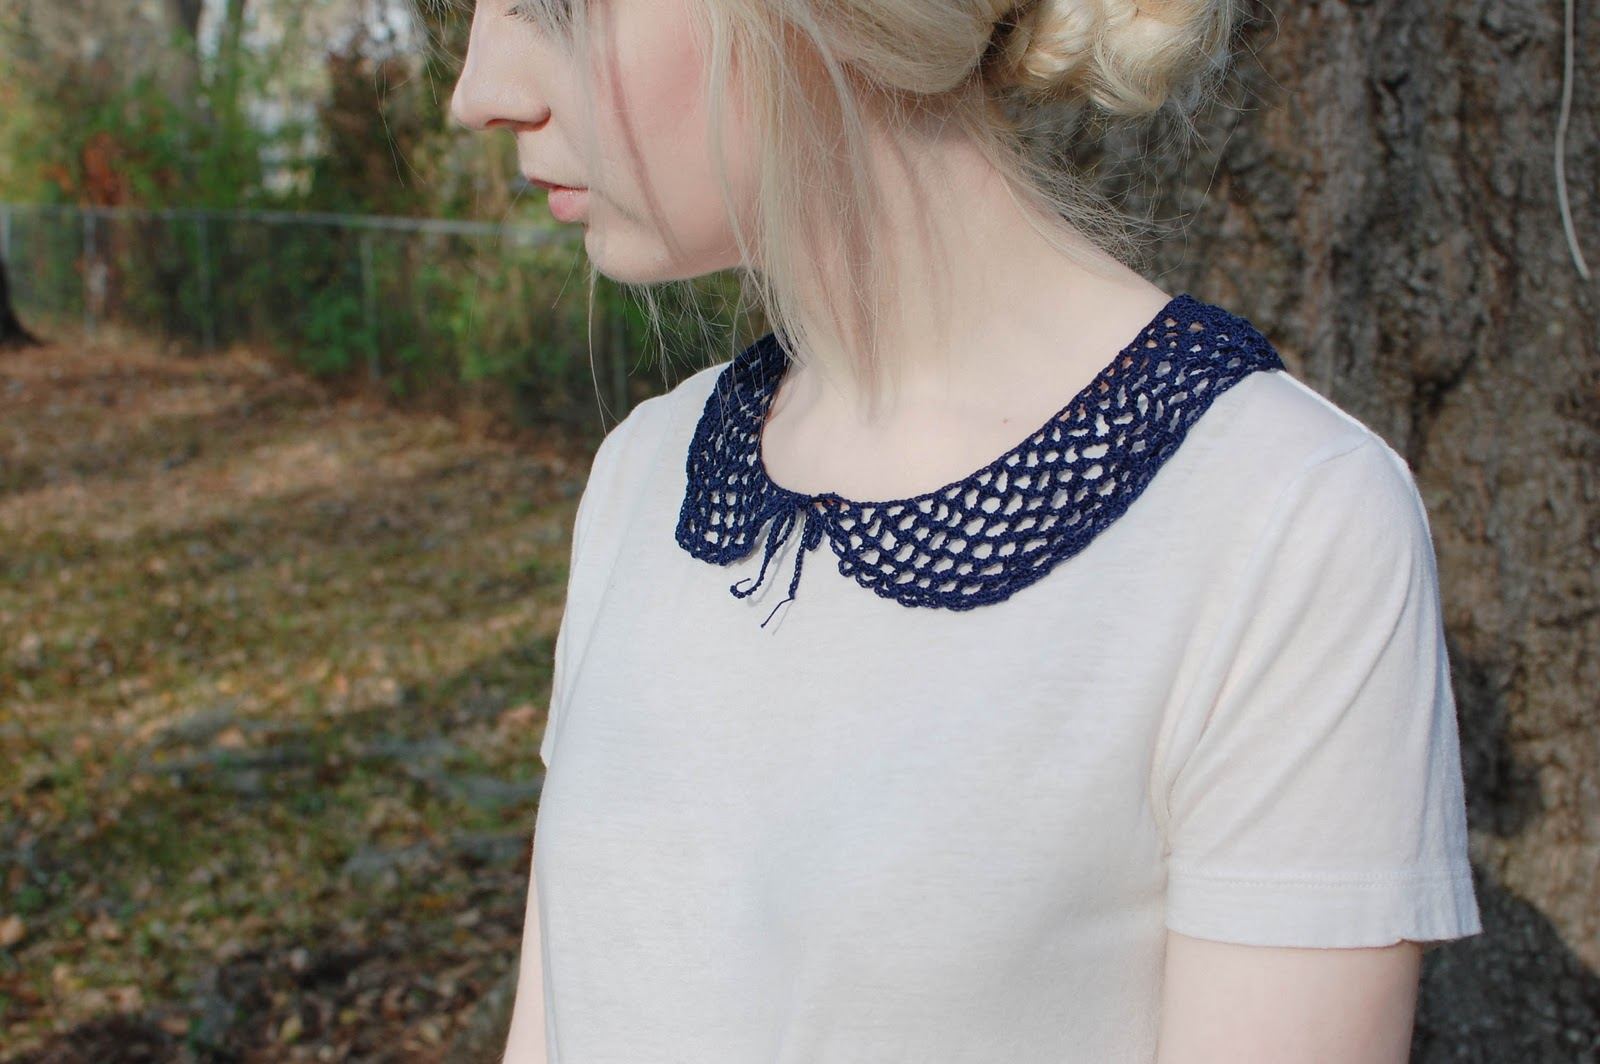 People webs peter pan crochet collar shop update peter pan crochet collar shop update bankloansurffo Image collections